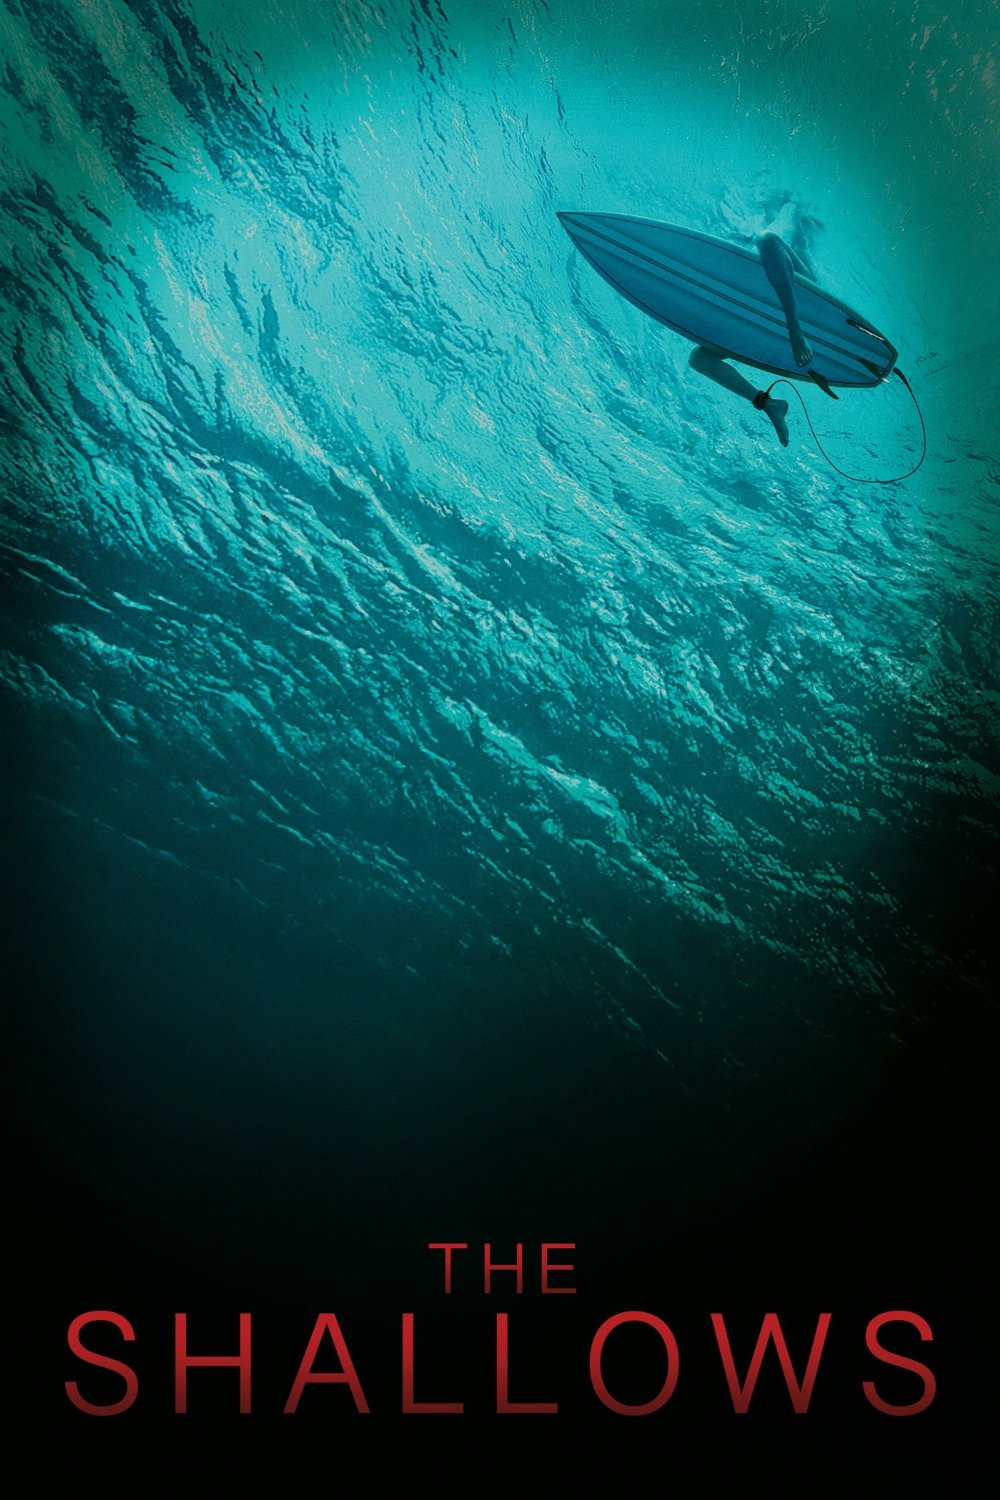 The Shallows [Movie] - The Shallows